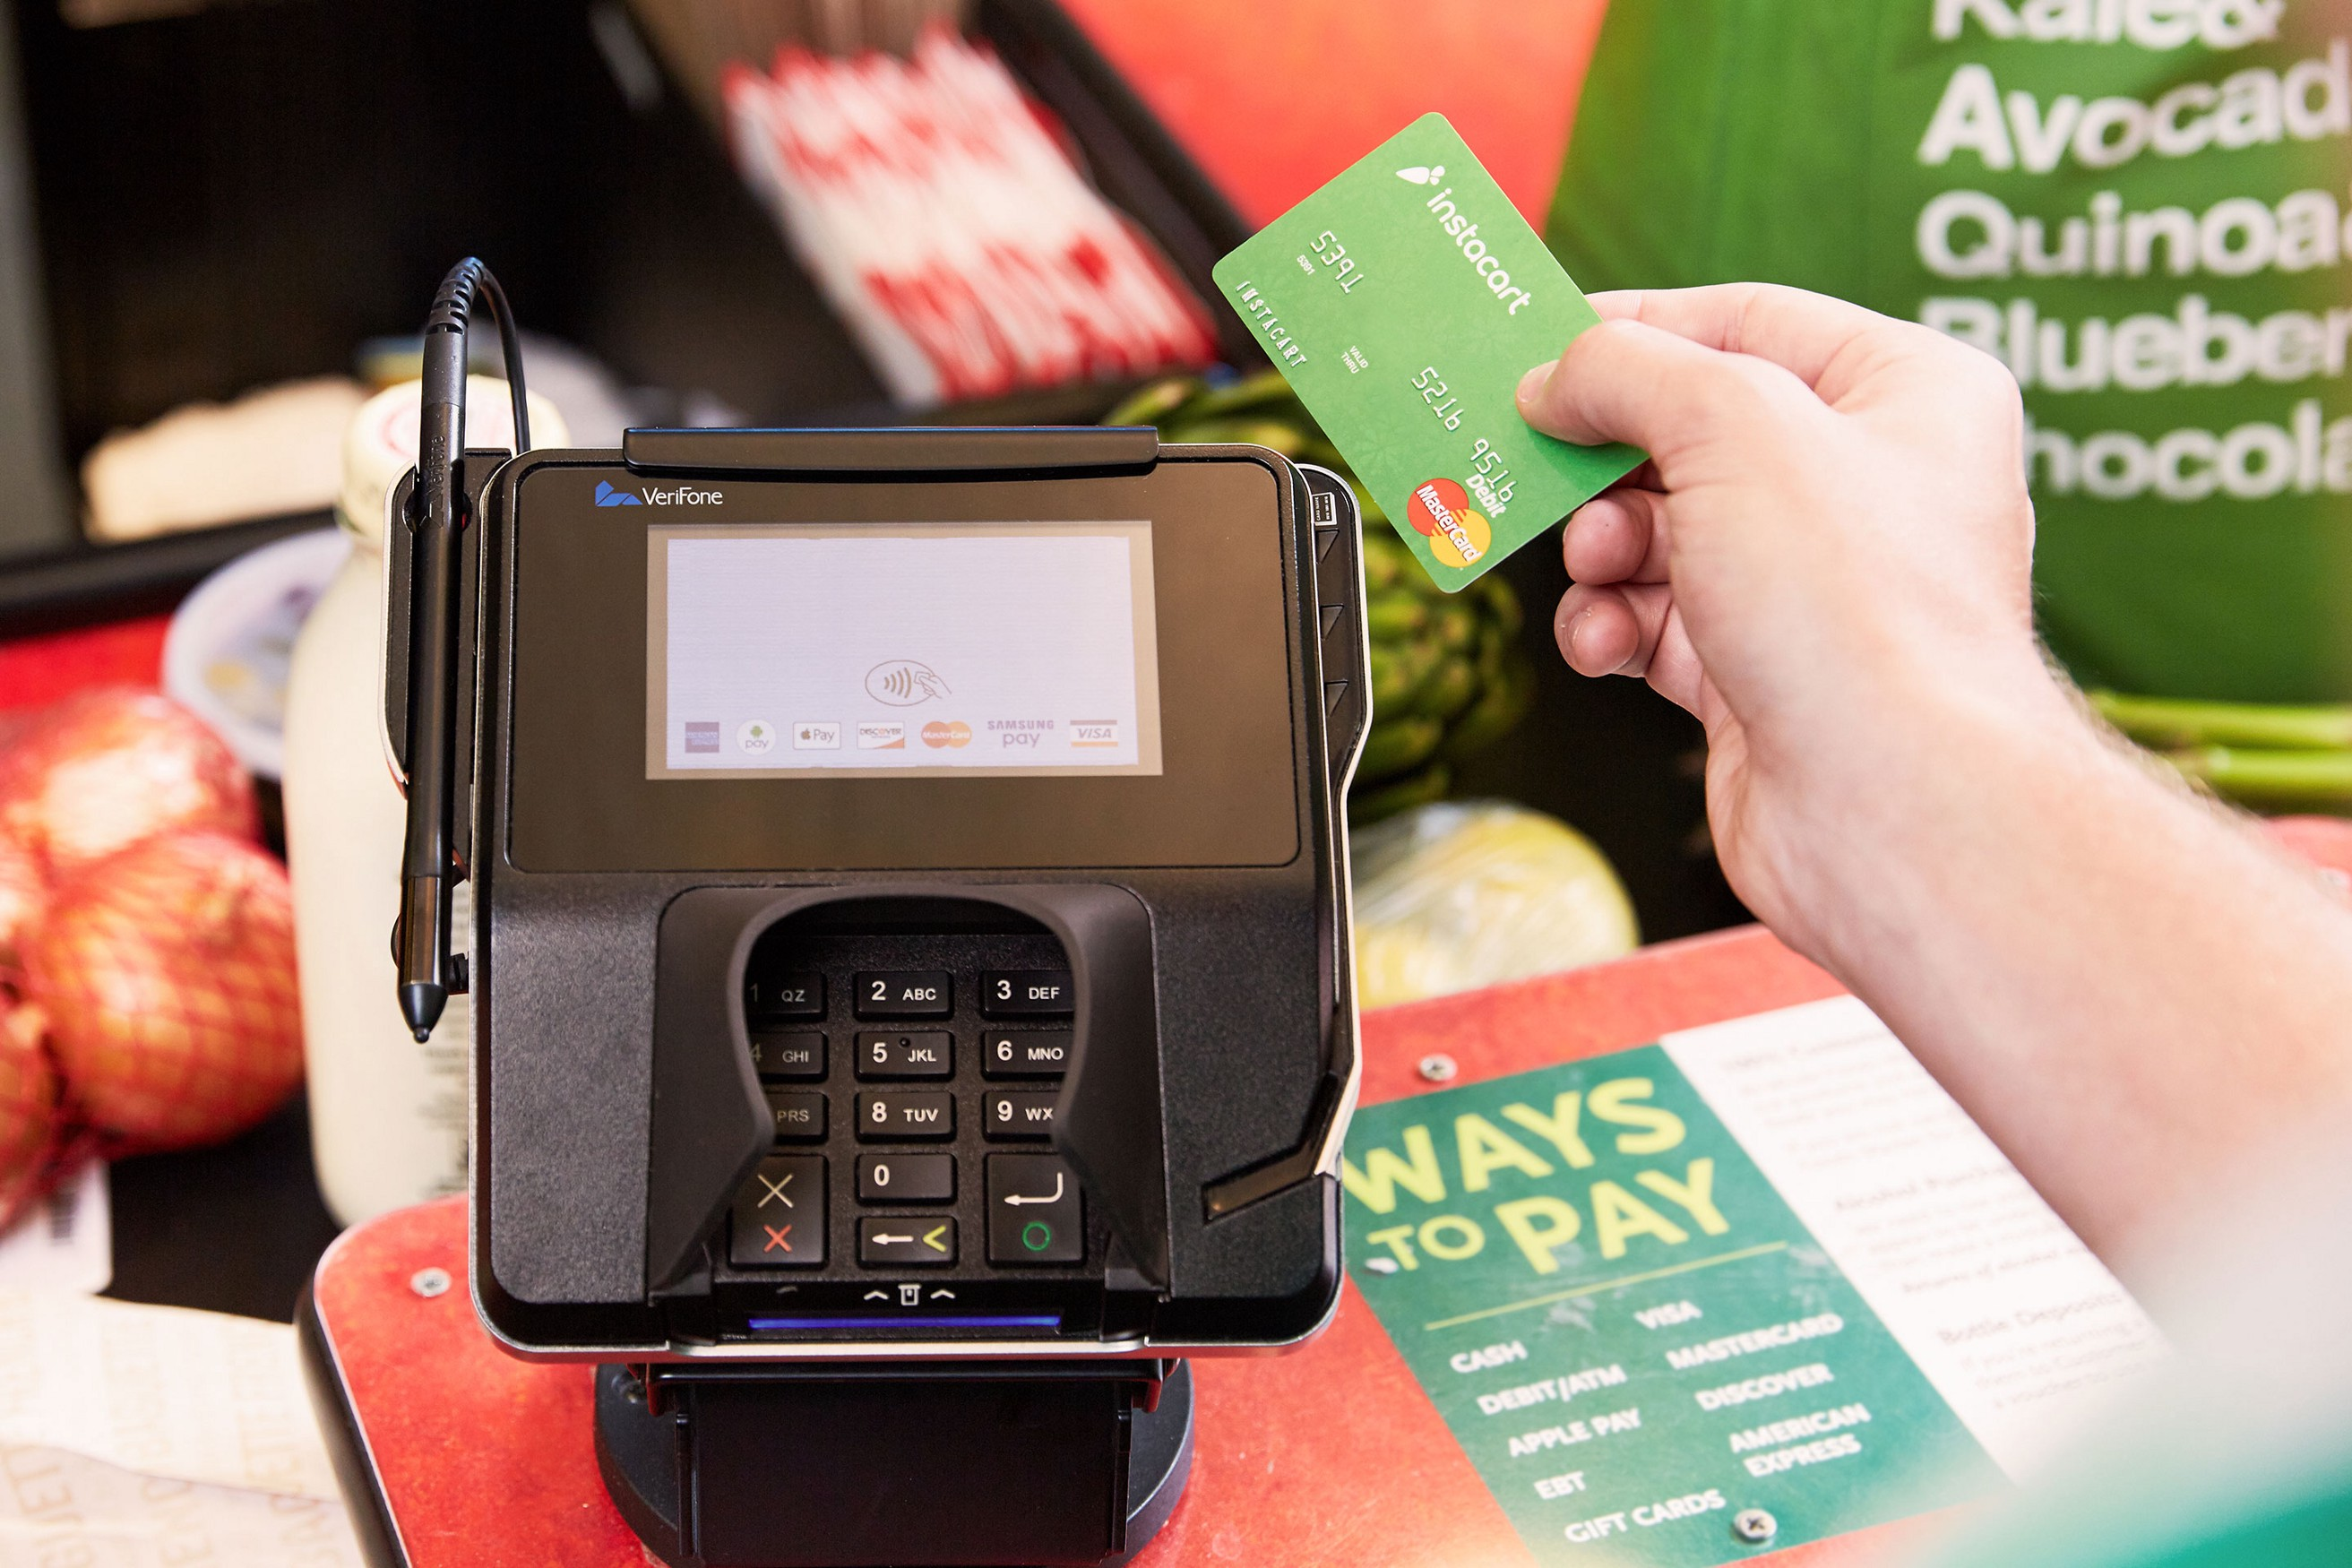 Enabling a seamless payment experience at Instacart through Marqeta